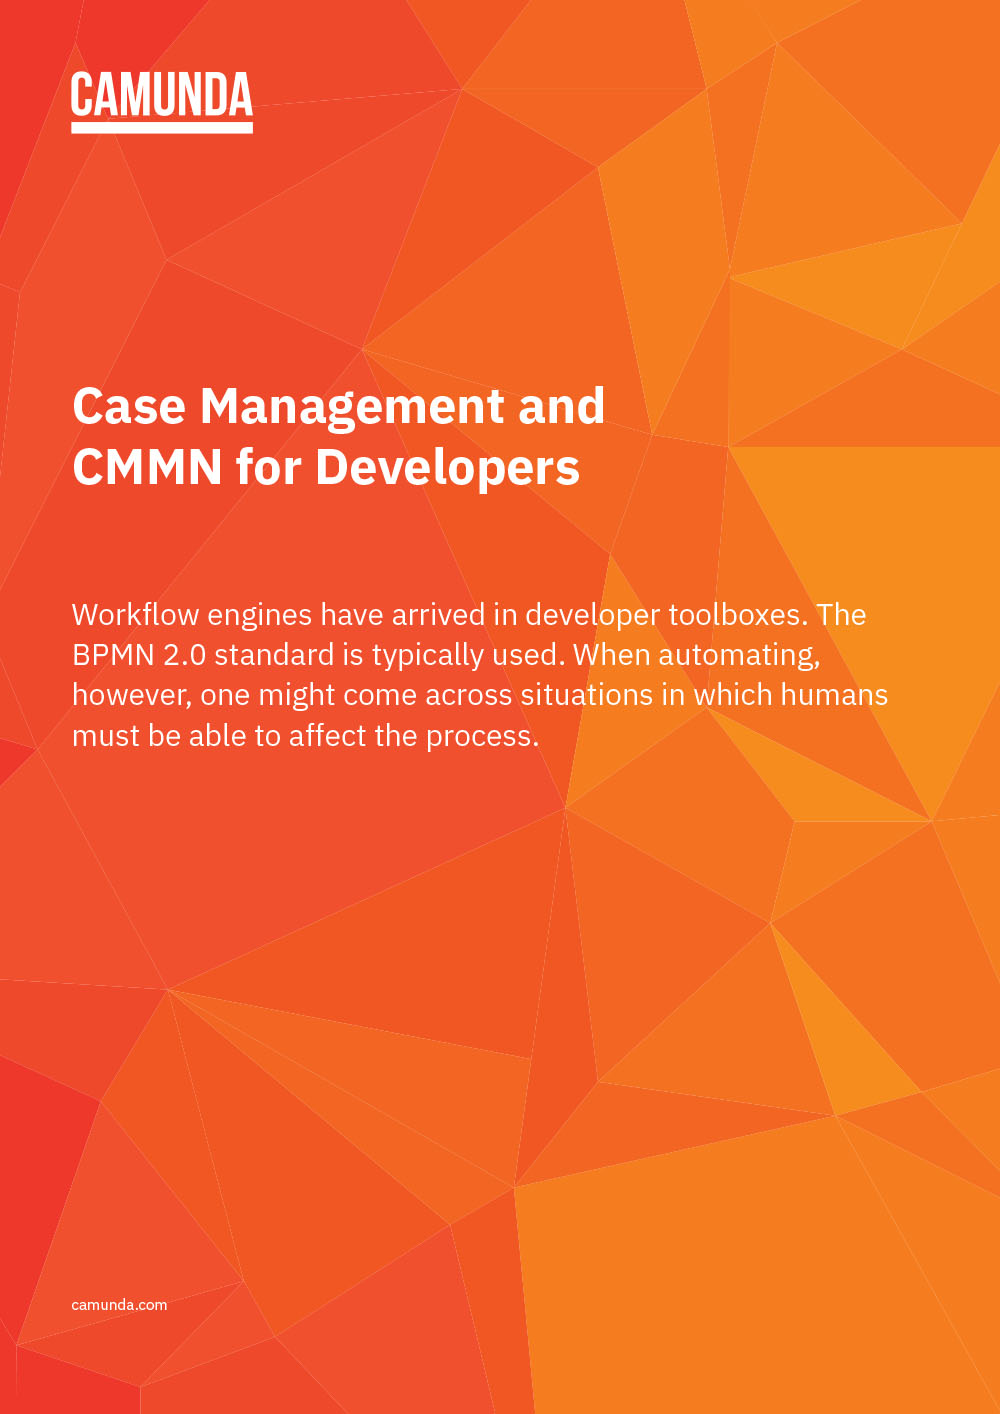 Case Management and CMMN for Developers